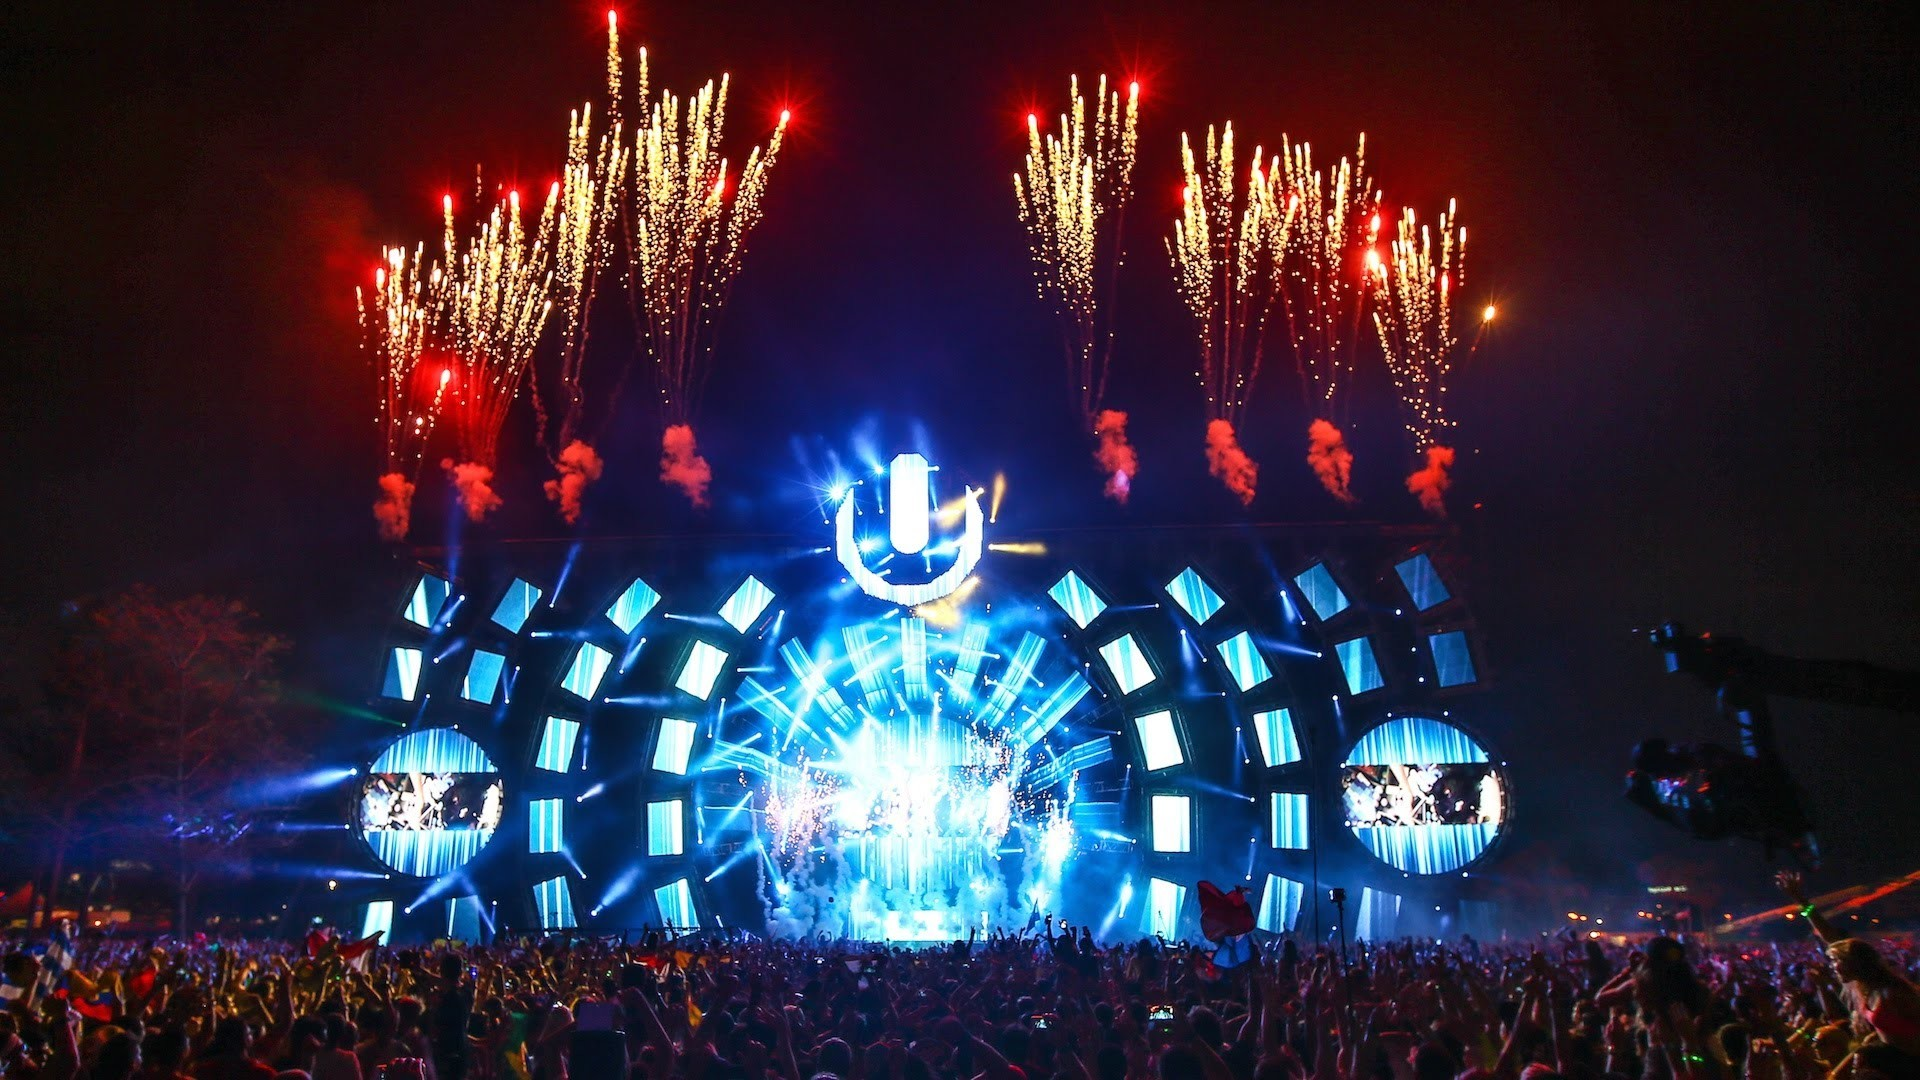 Download Ultra Music Festival Hd Wallpaper Gallery: Edm Festival Wallpaper (81+ Images